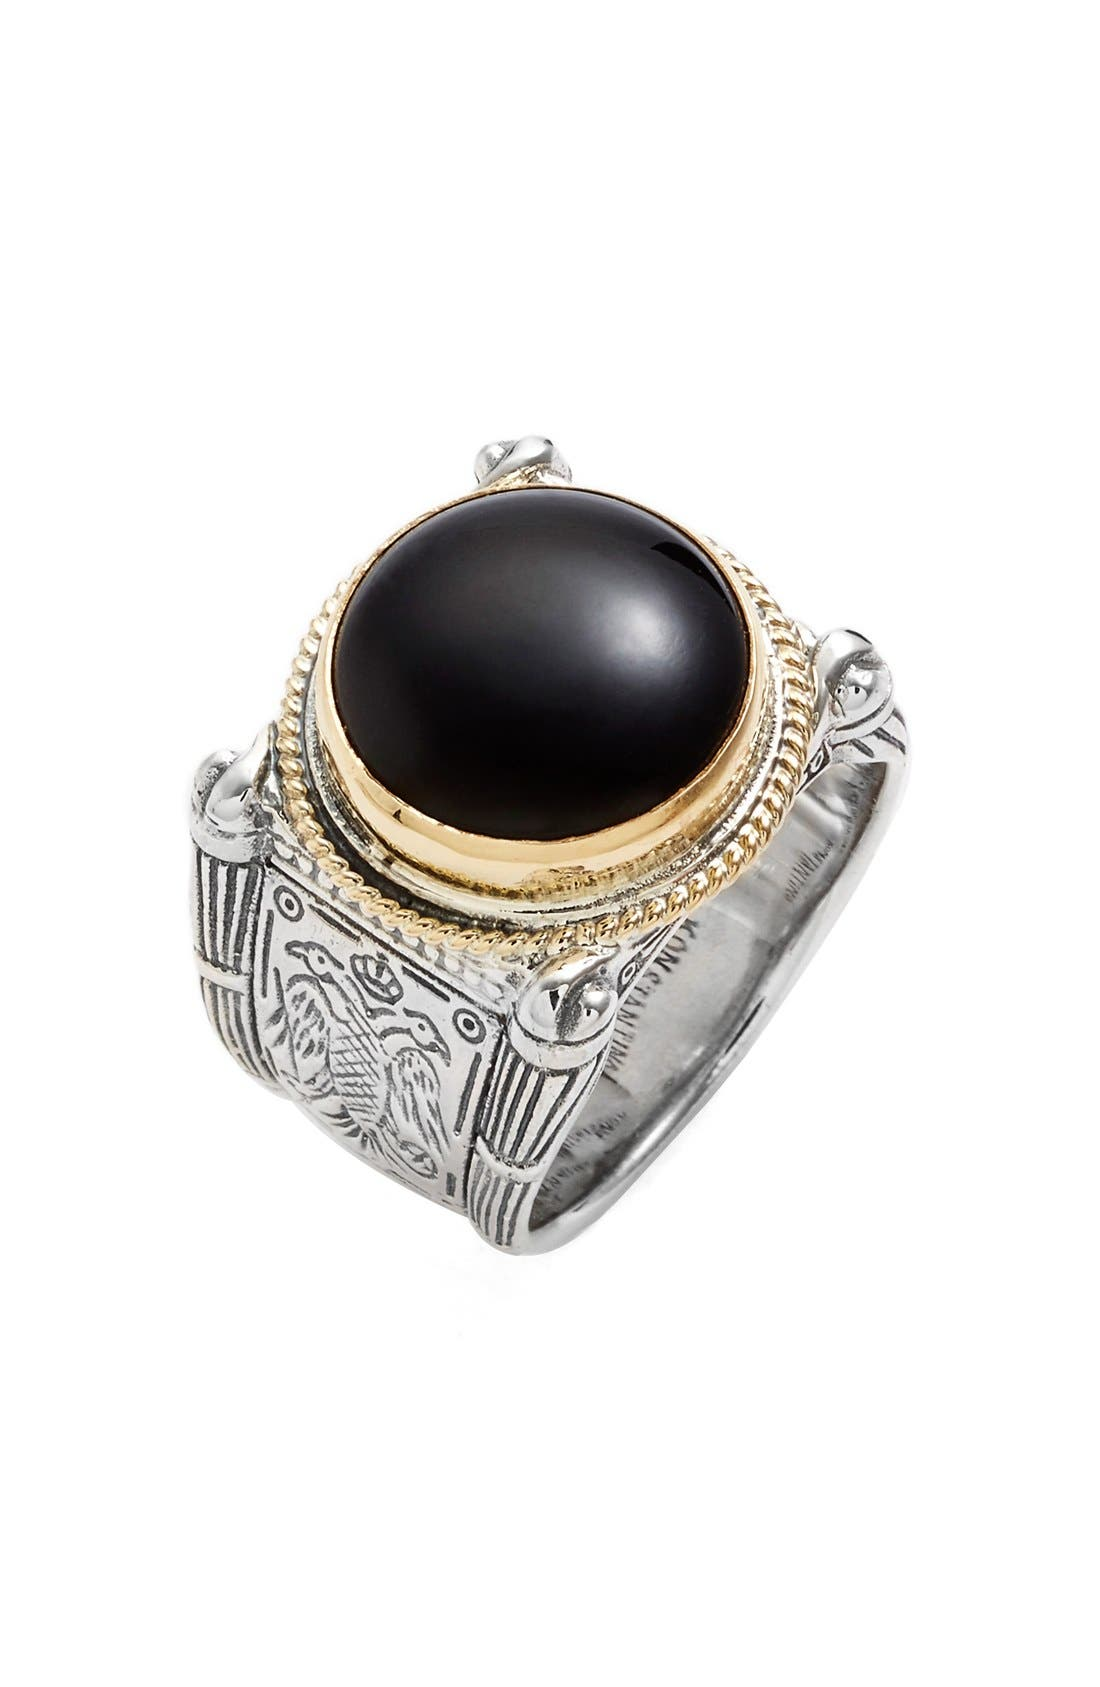 'Minos' Etched Black Onyx Ring,                         Main,                         color, Silver/ Gold/ Black Onyx